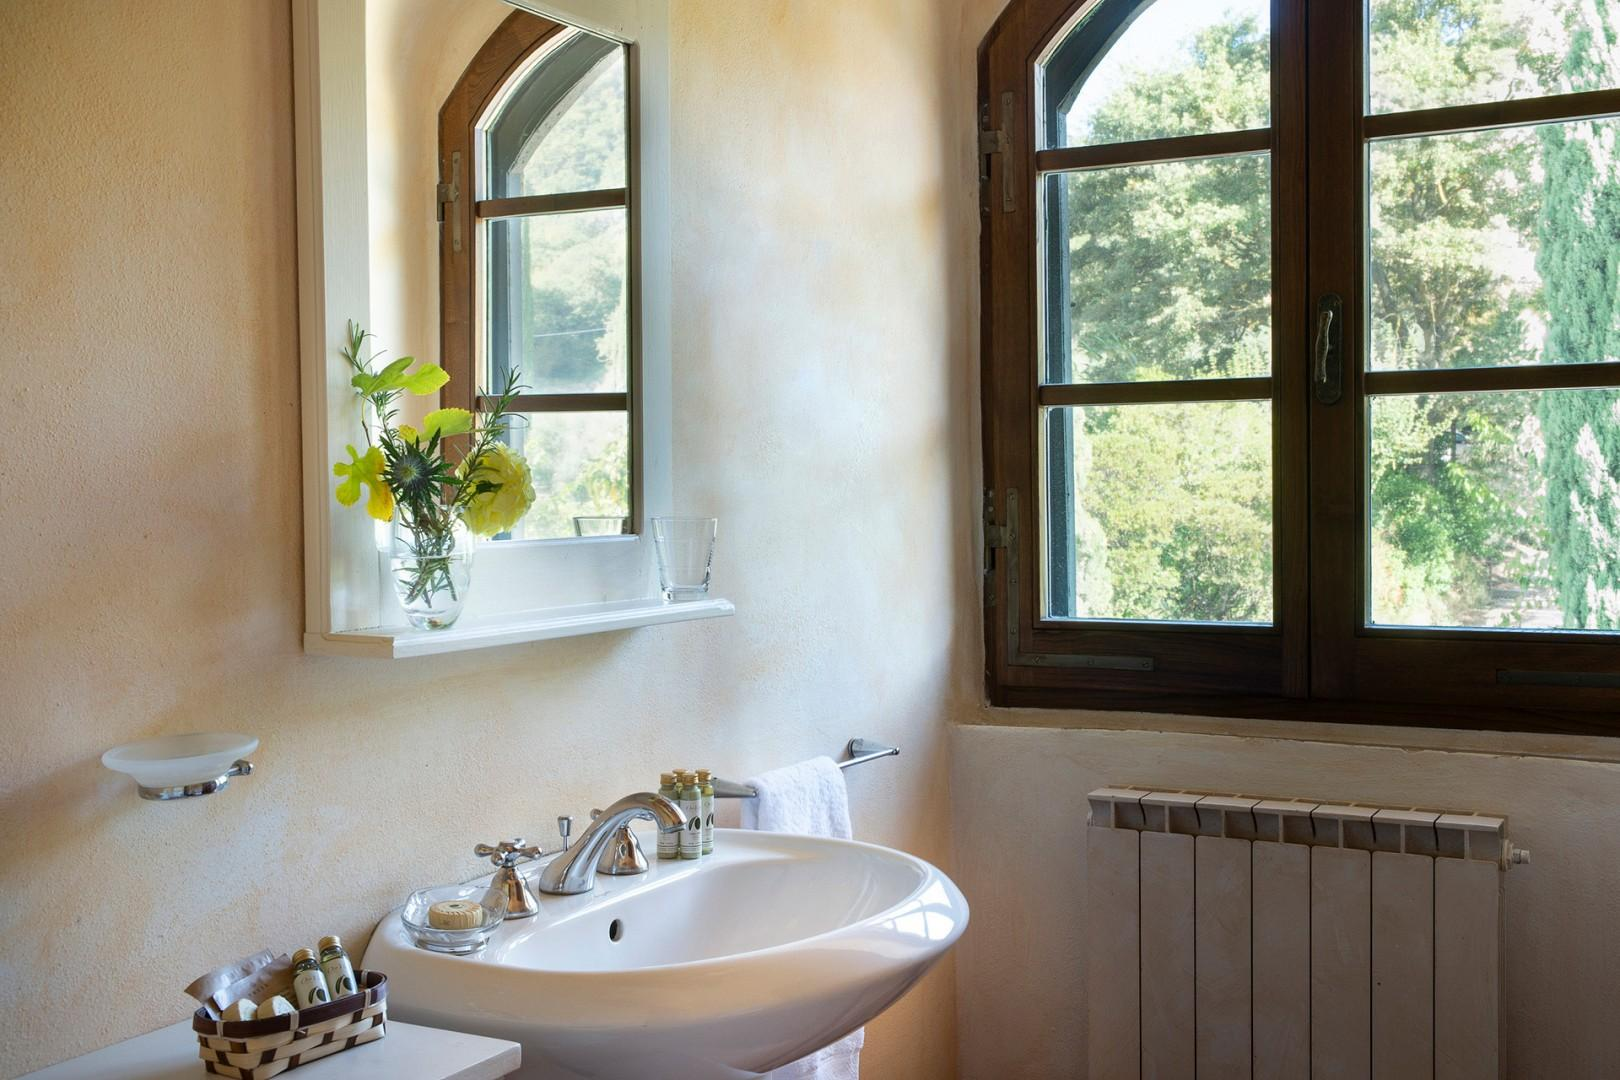 Bathroom is fitted with a bathtub, shower, sink, toilet and bidet.